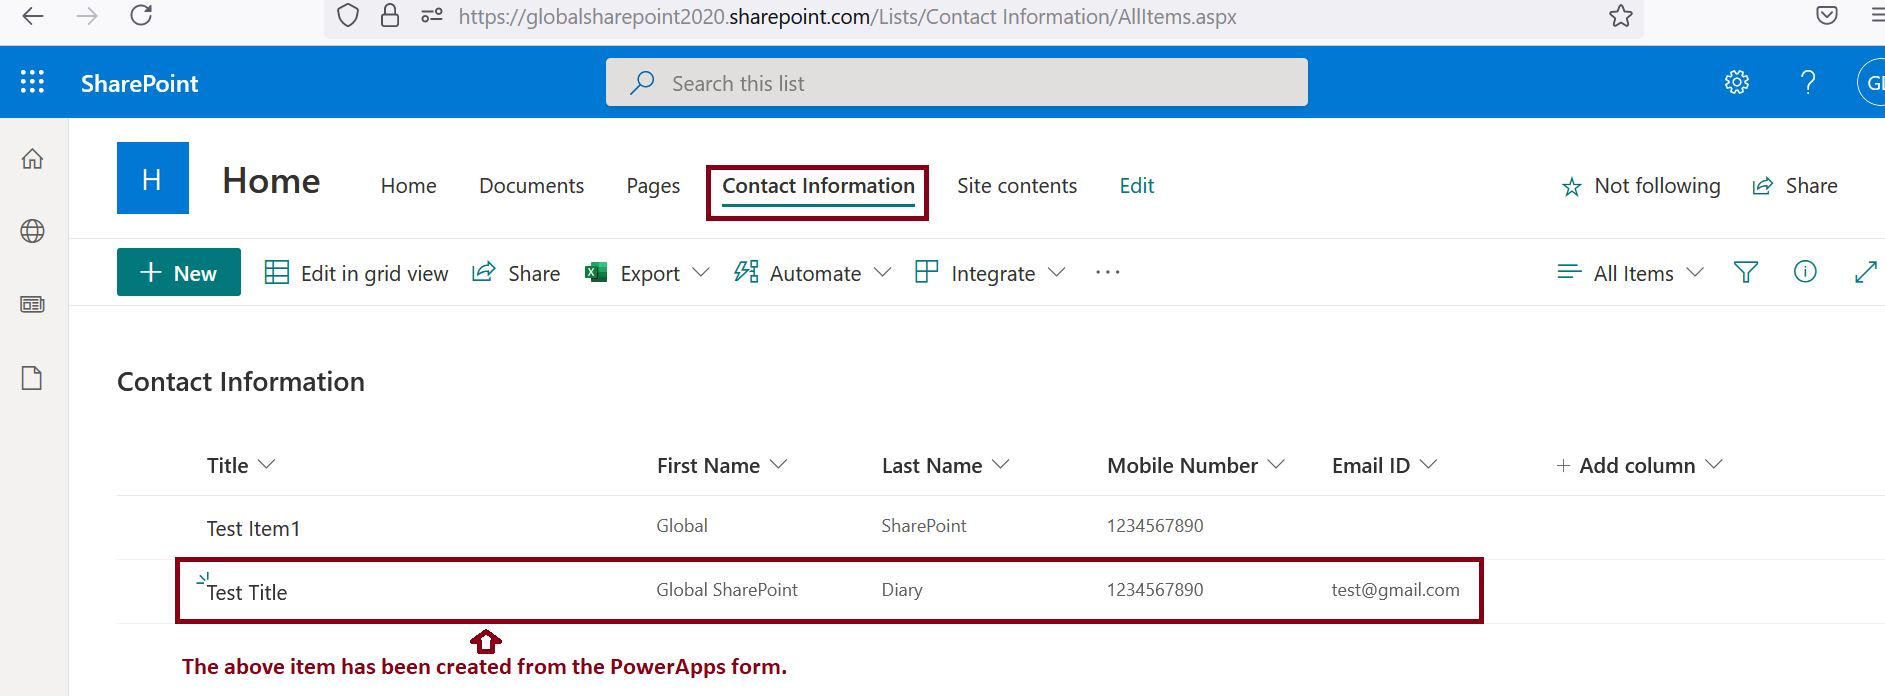 SharePoint list item has been created using the PowerApps SubmitForm function